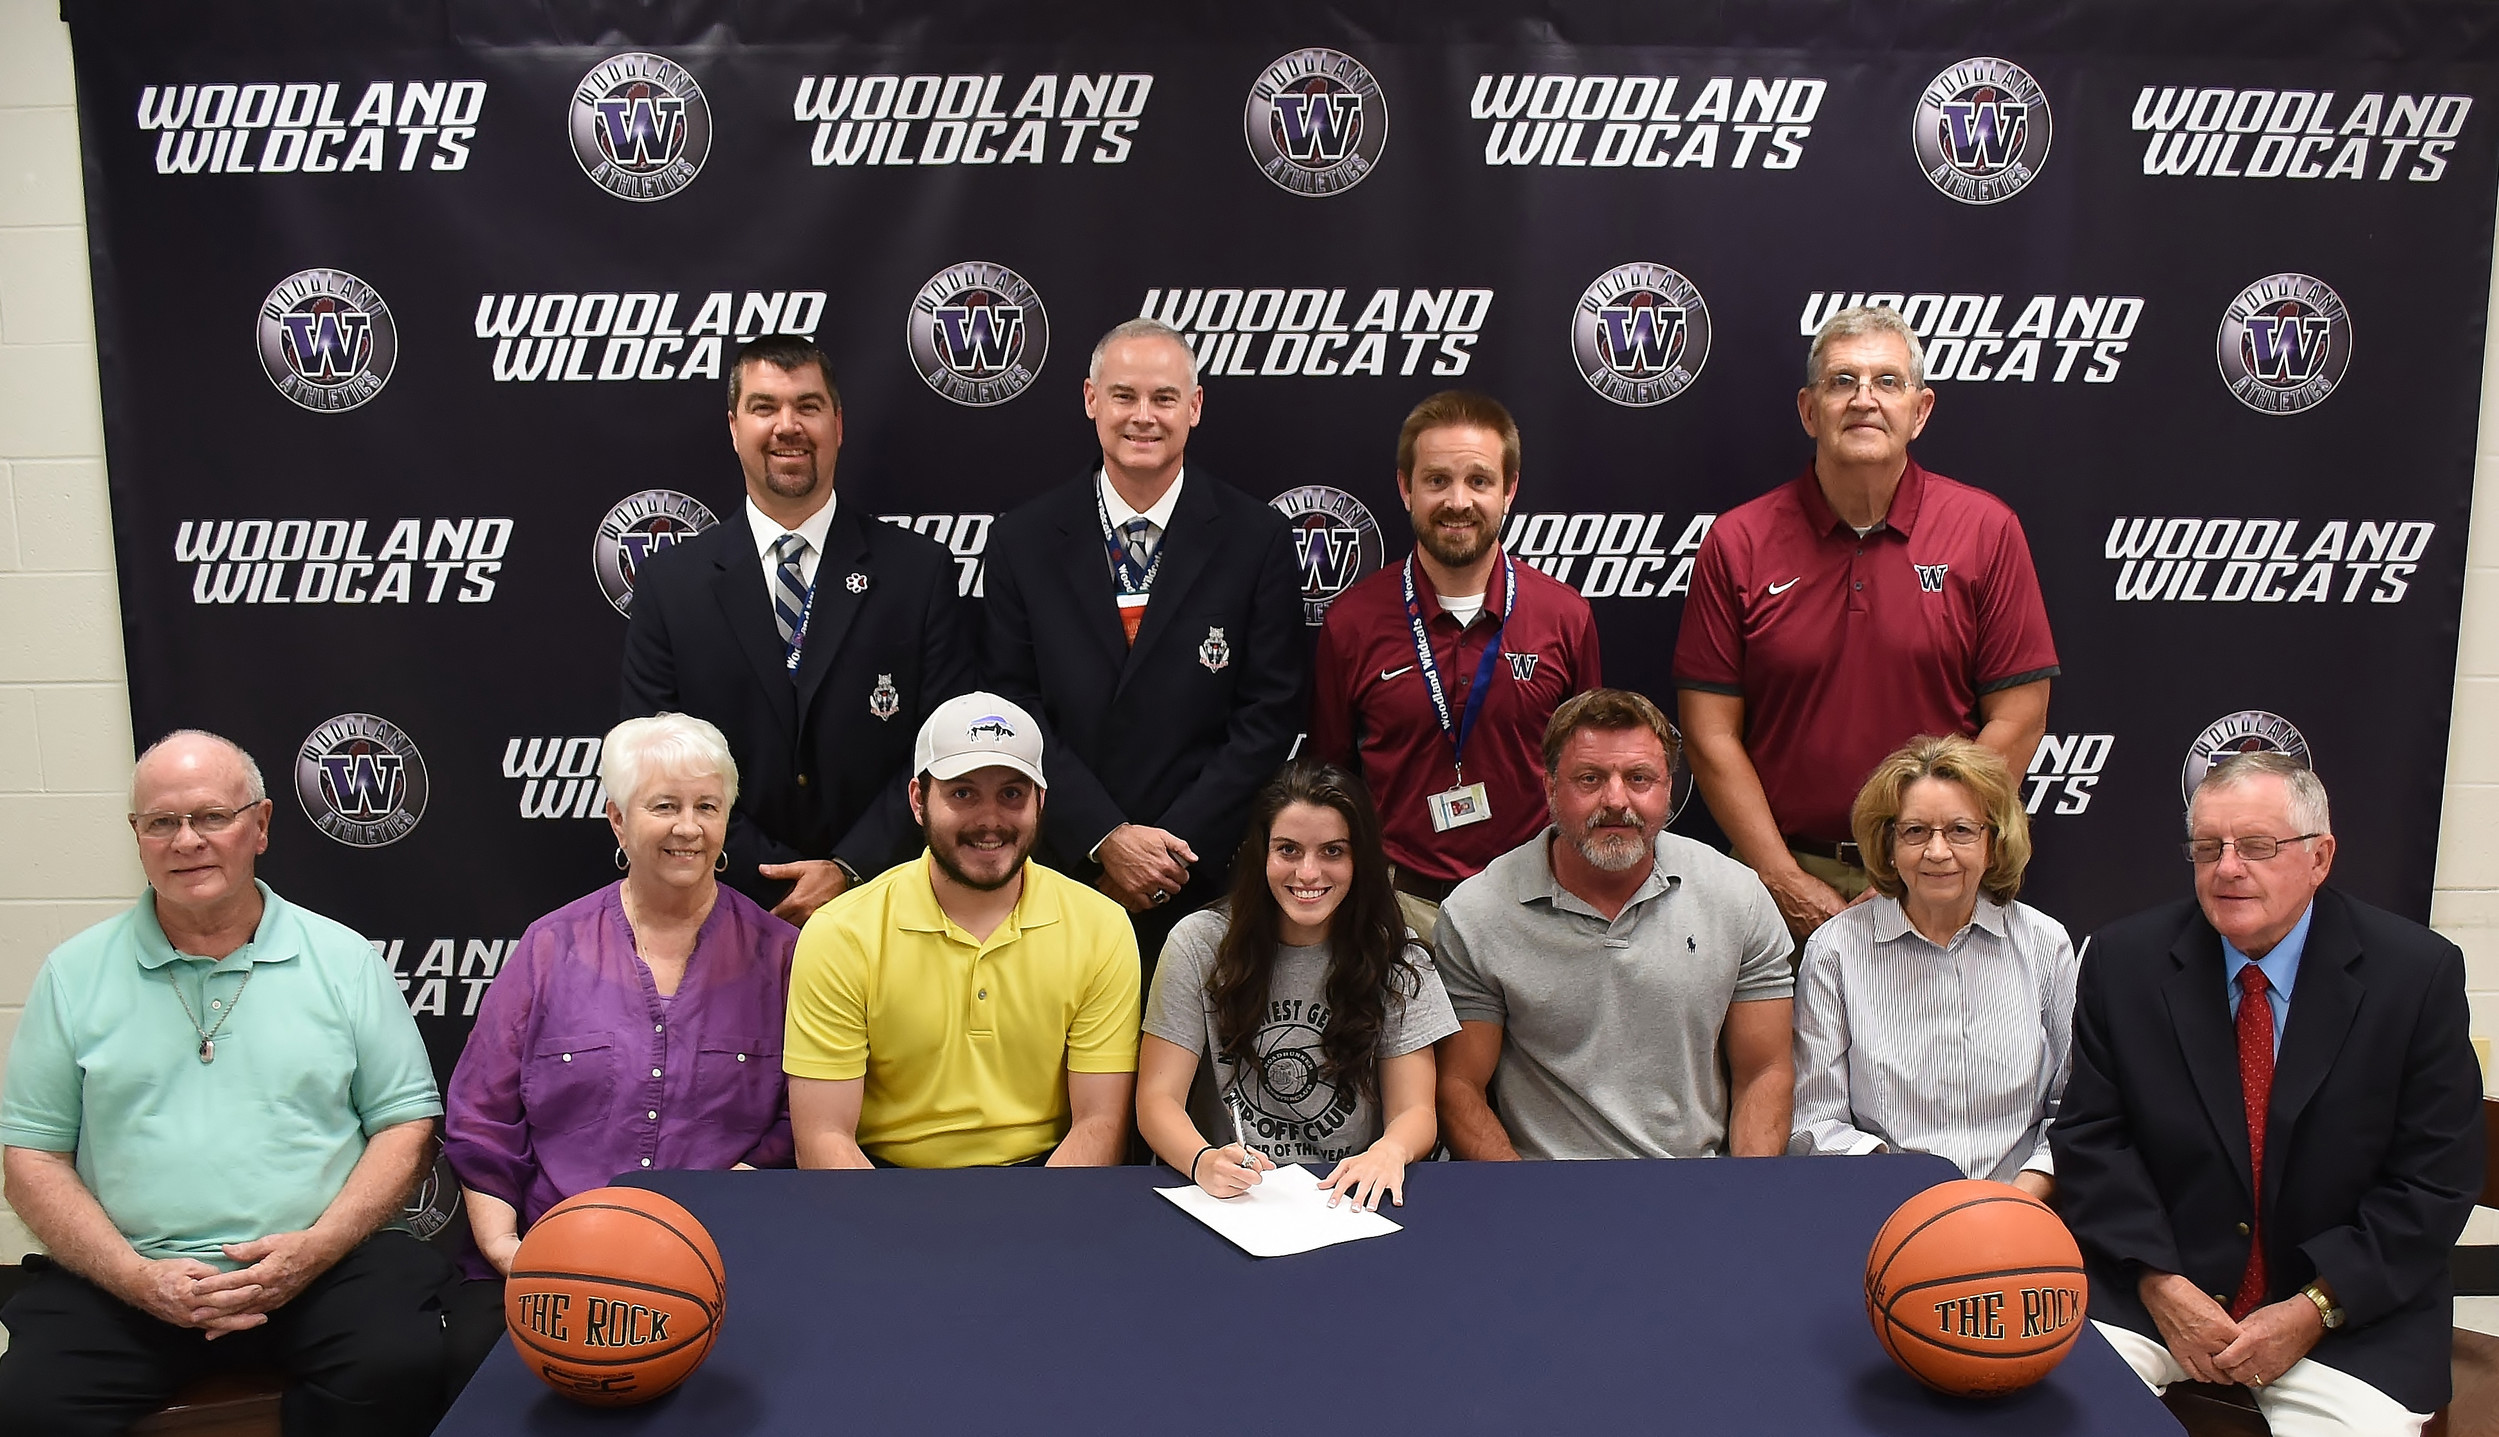 Woodland High senior Whitney Harris, center, signed Friday to play basketball at Toccoa Falls College. On hand for the signing were, front row, from left, Jack Galloway, grandfather; Joyce Galloway, grandmother; Denver Harris, brother; Eric Harris, father; Patsy Harris, grandmother; Tommy Harris, grandfather; back row, John Howard, Woodland athletic director; Dr. Wes Dickey, Woodland principal; Kyle Morgan, Woodland head girls basketball coach; and Steve Dunnington, Woodland assistant girls basketball coach.